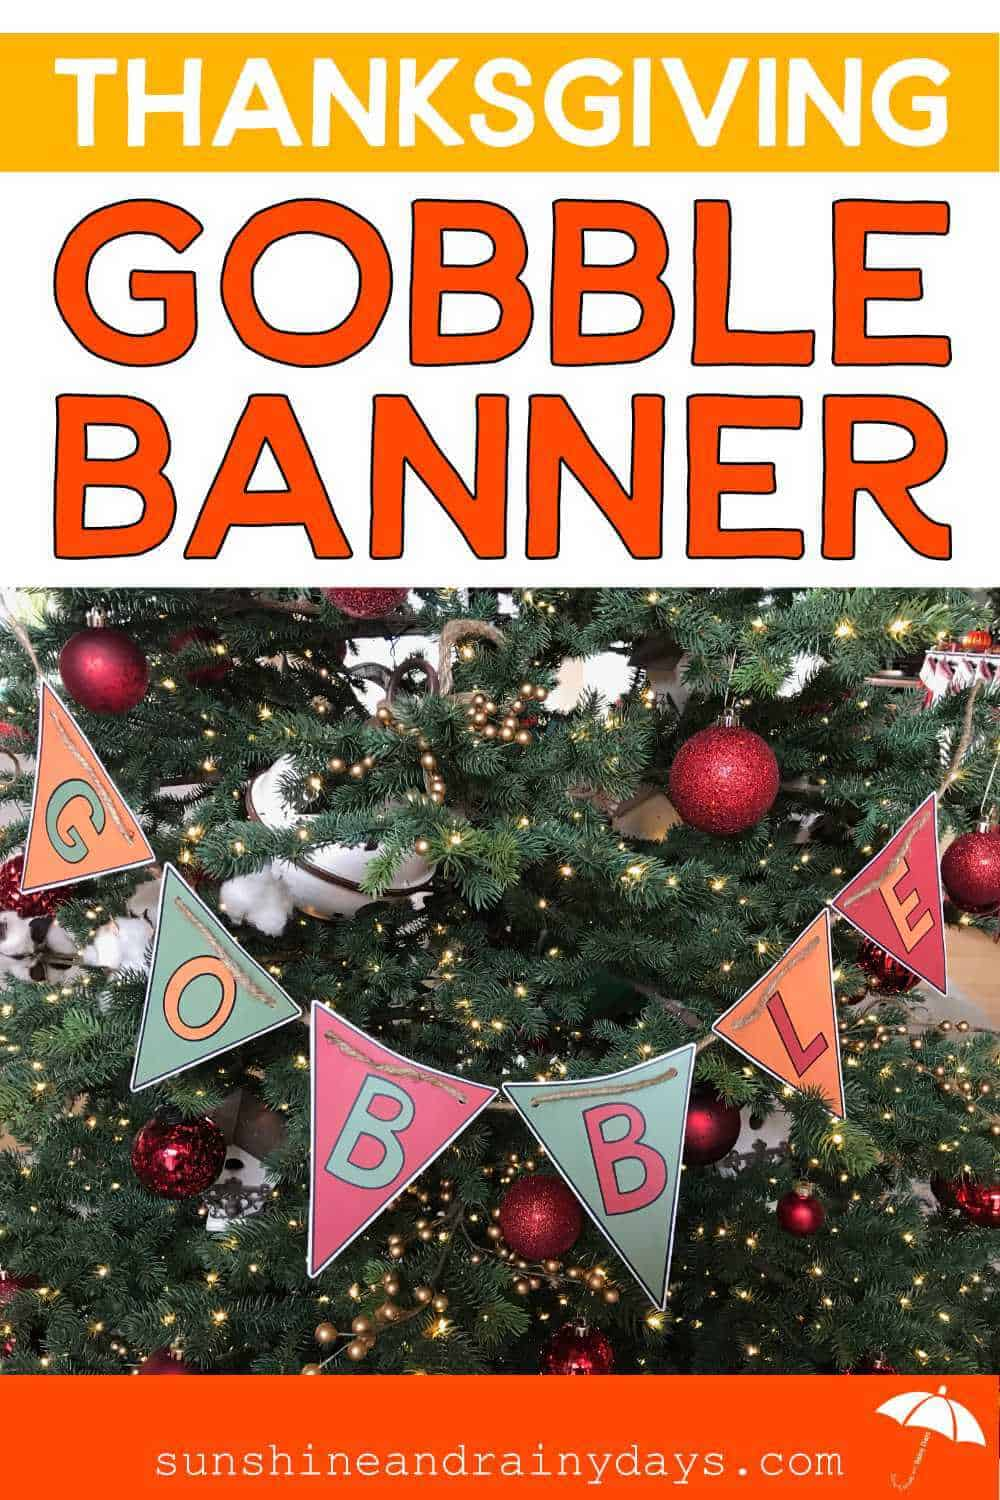 Thanksgiving Gobble Banner decorates a Christmas Tree!